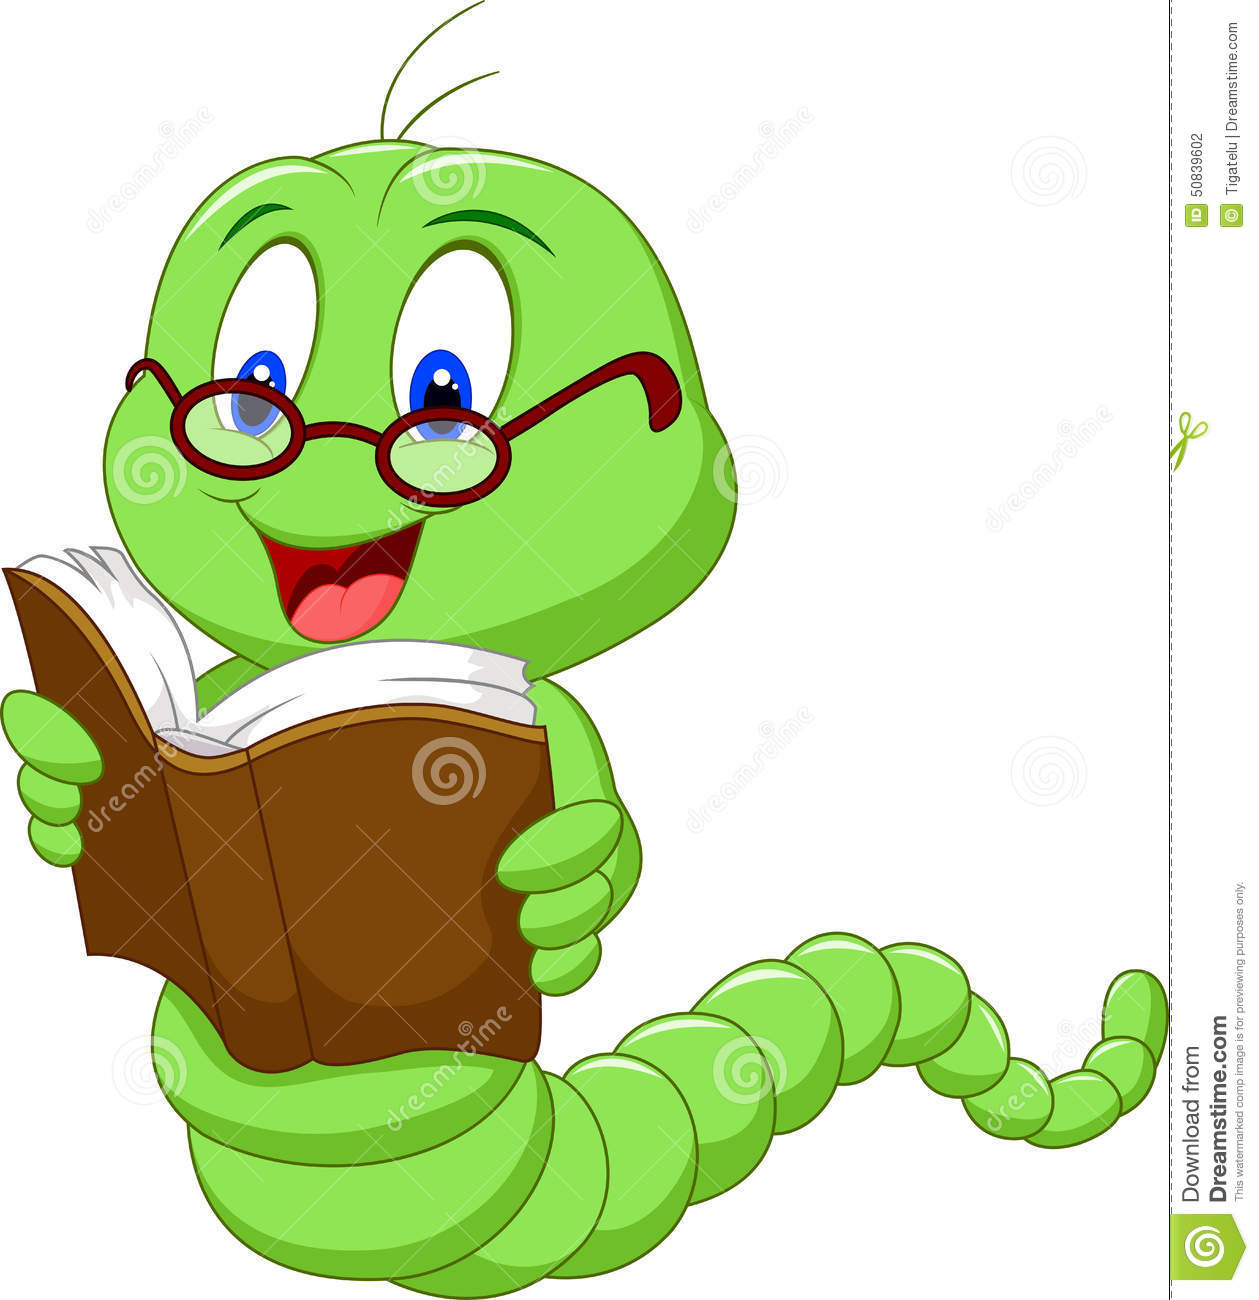 Cartoon Worm Reading Book Stock Vector - Image: 50839602